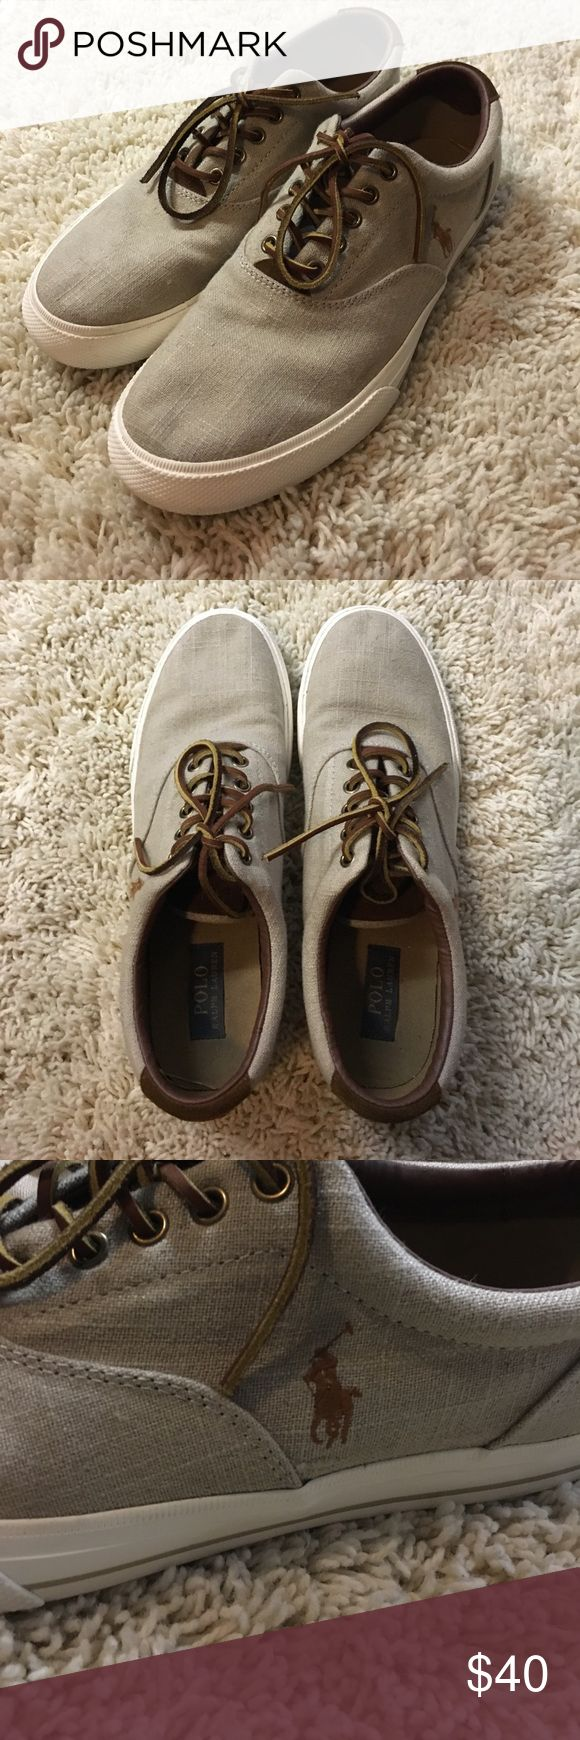 Men's Polo Shoes These shoes are a must have! The detailing alone on these shoes are a statement! Comfortable, but very stylish! Only worn twice! Don't miss out on these! Polo by Ralph Lauren Shoes Sneakers